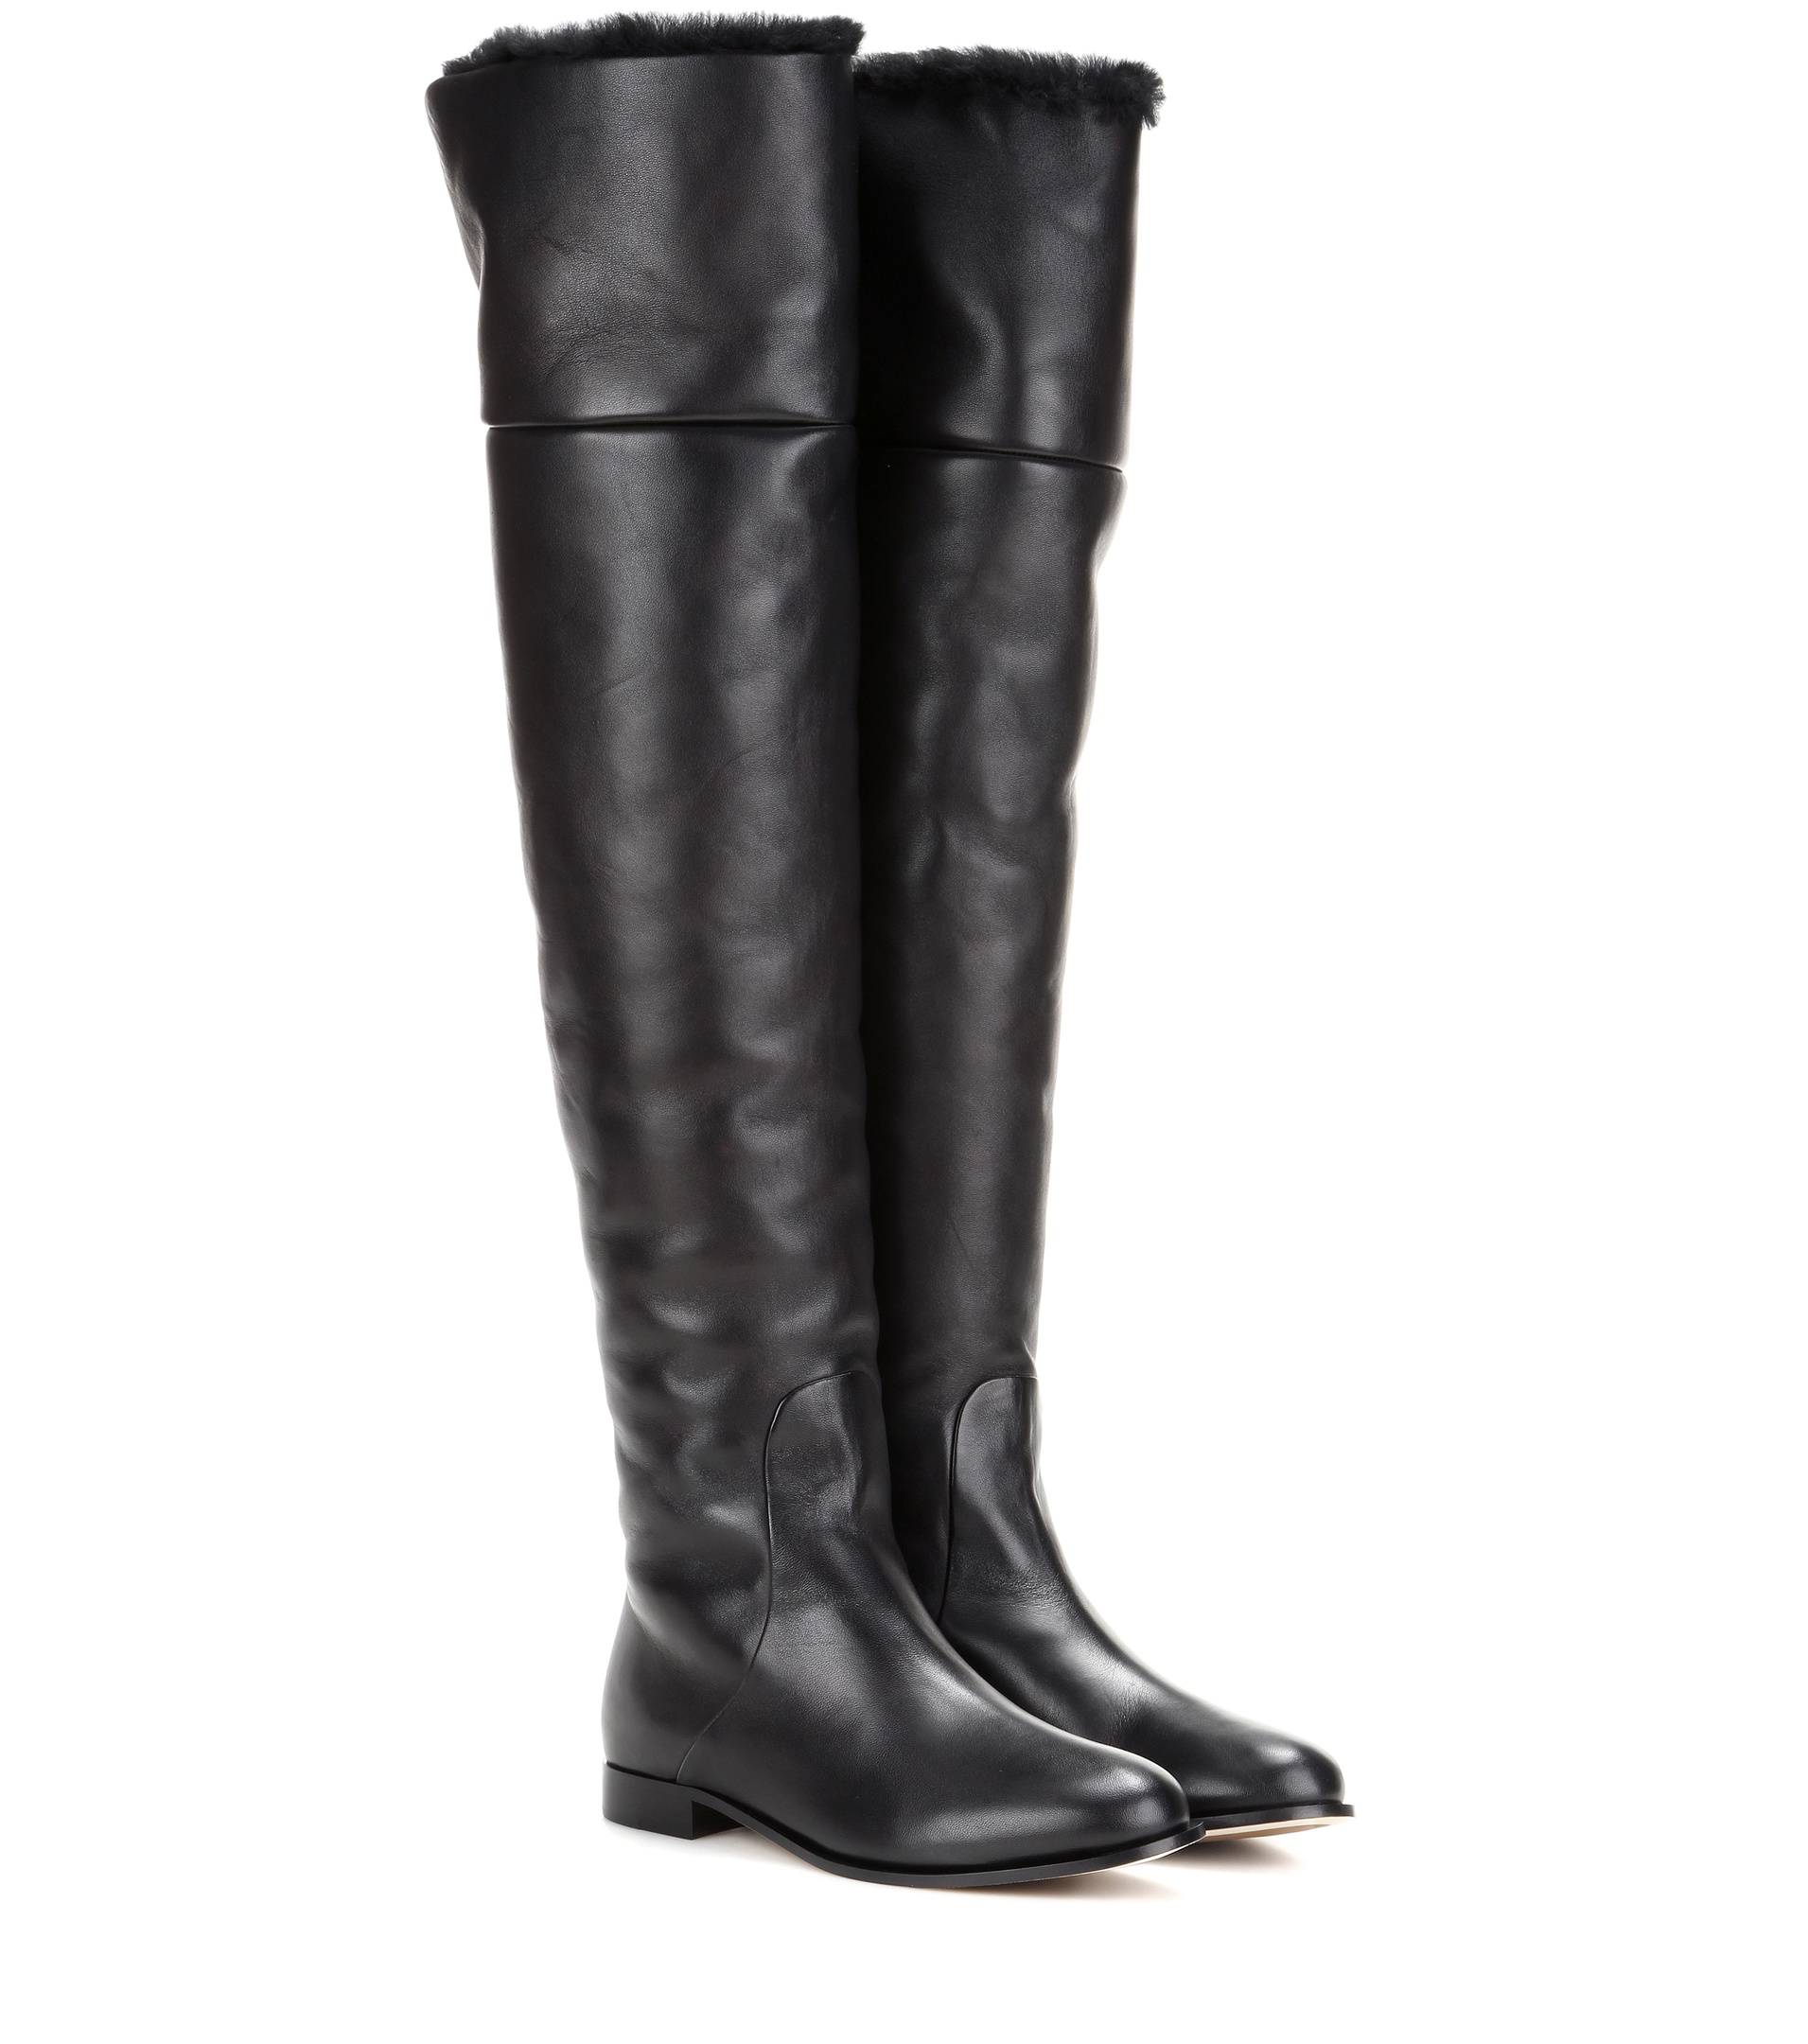 Jimmy choo Marshall Flat Leather Over-the-knee Boots in Black | Lyst